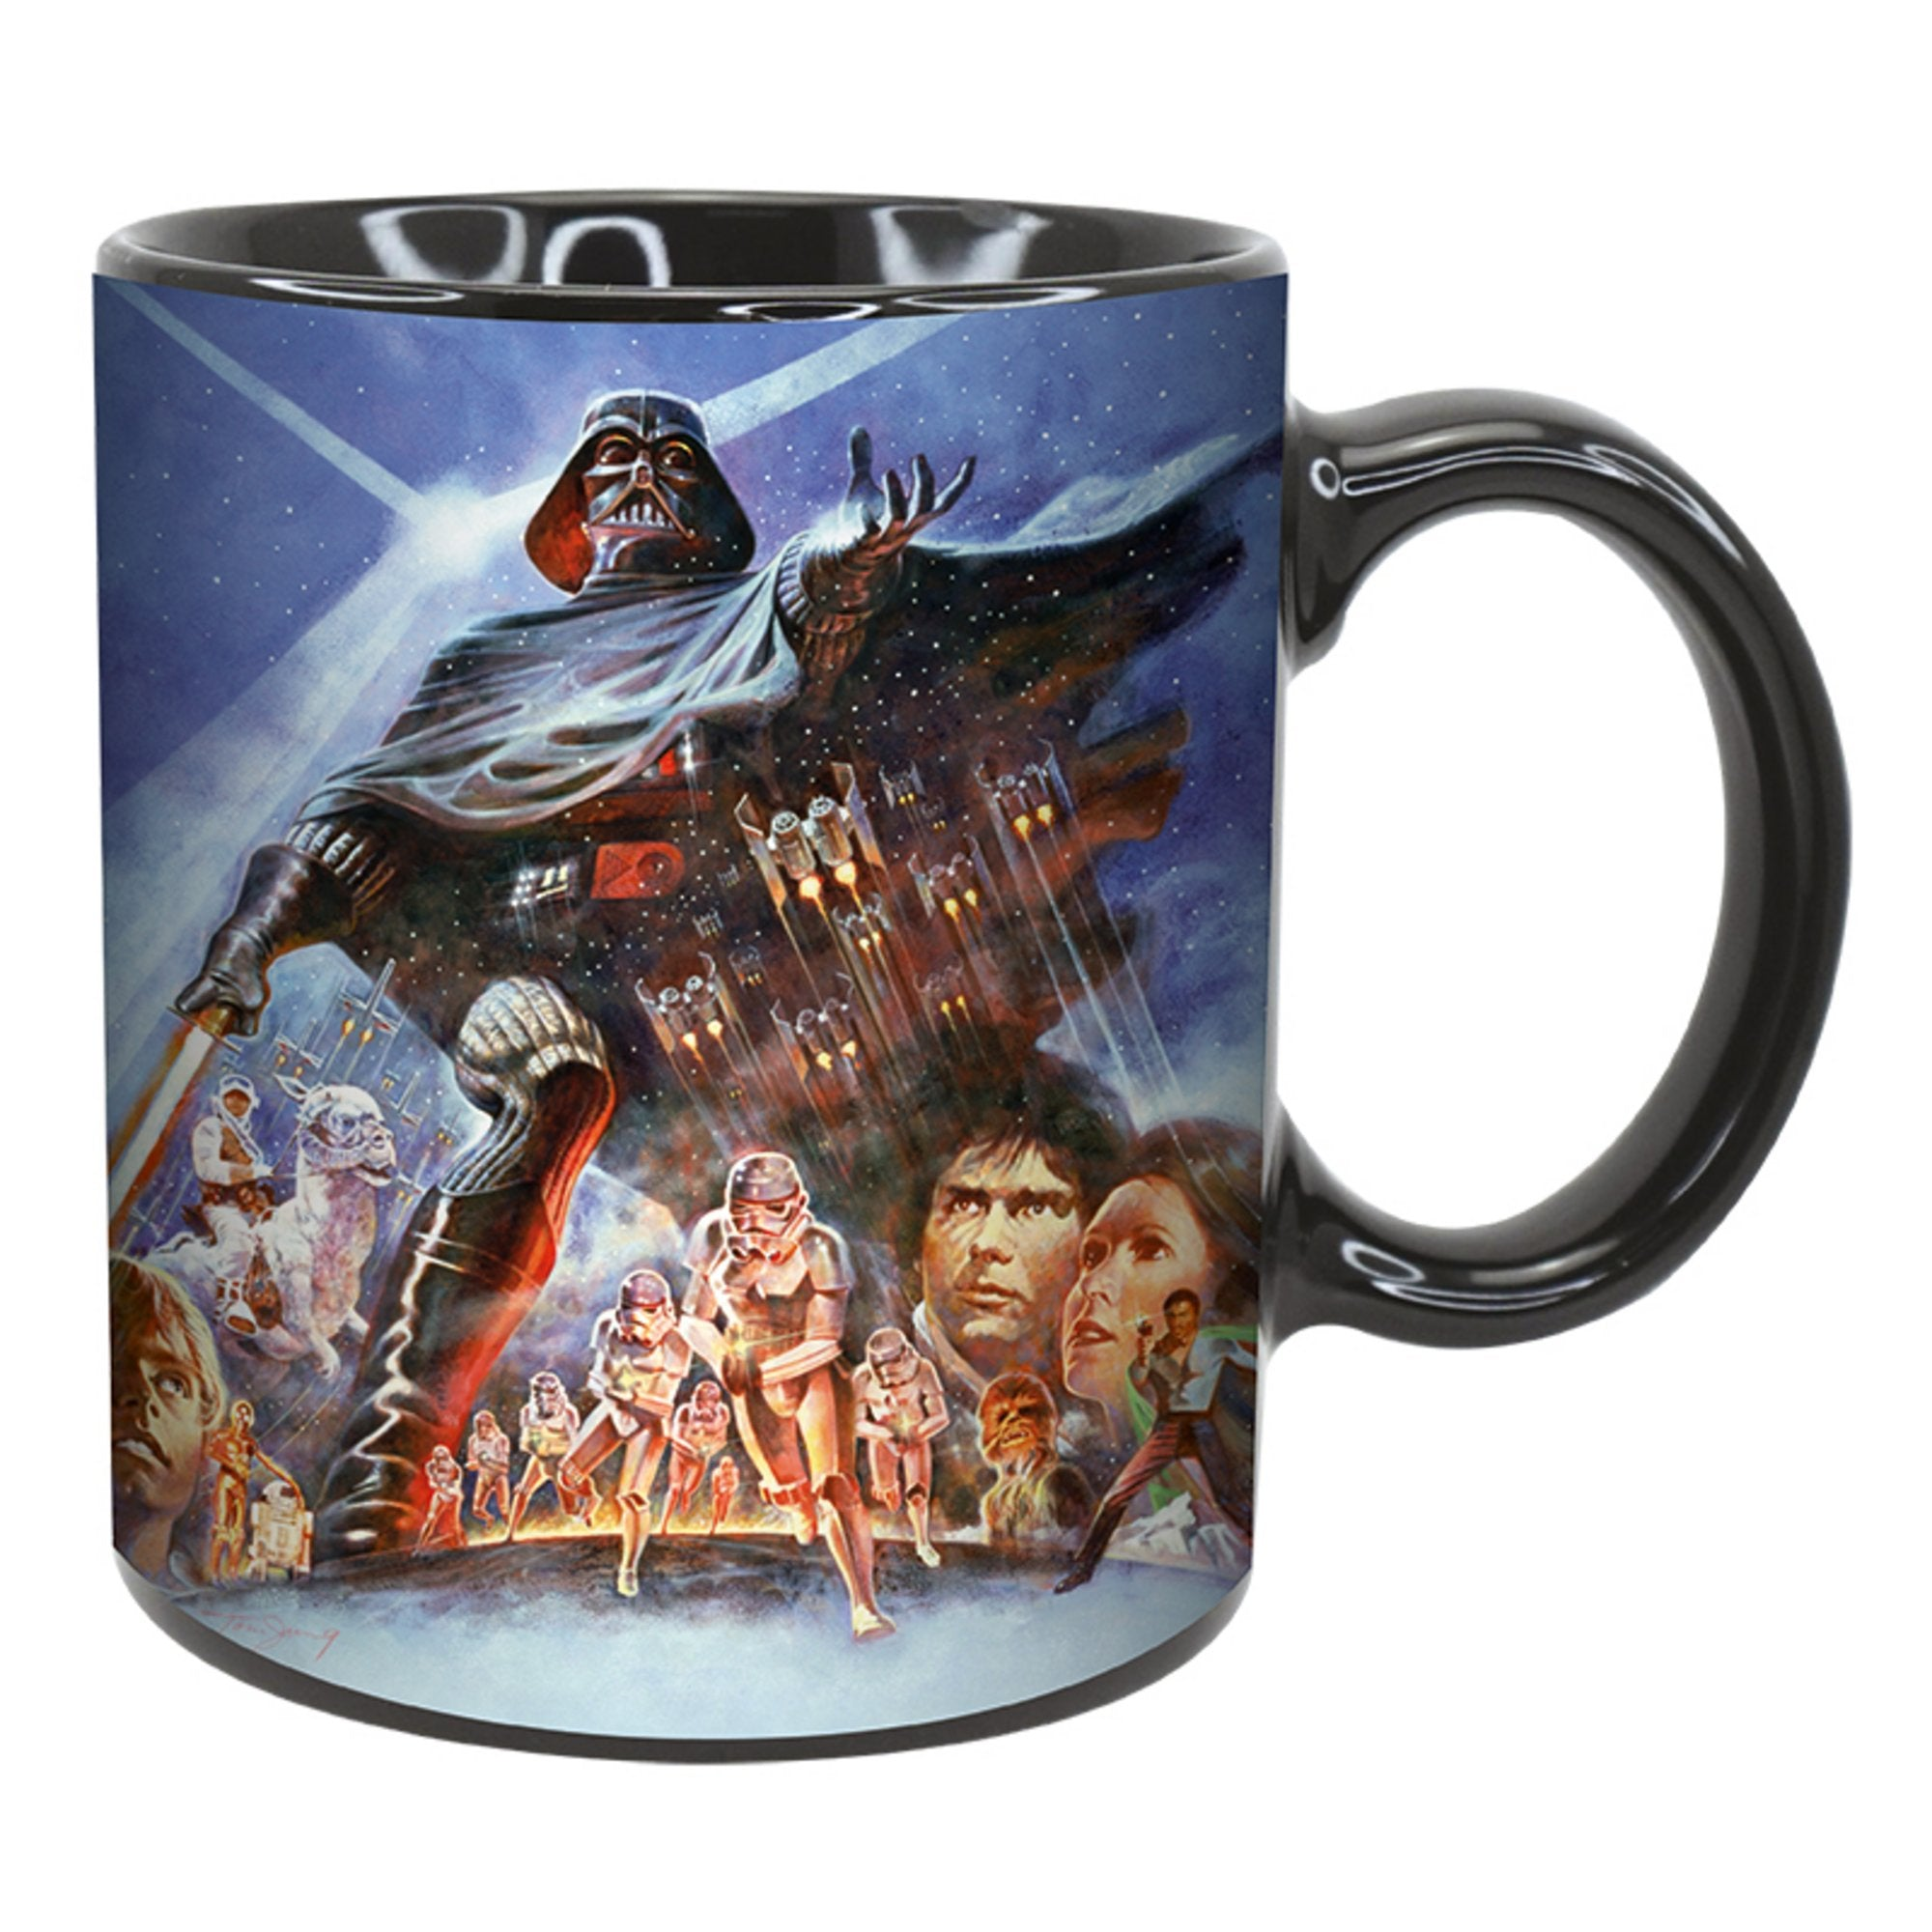 Star Wars Mug - The Empire Strikes Back